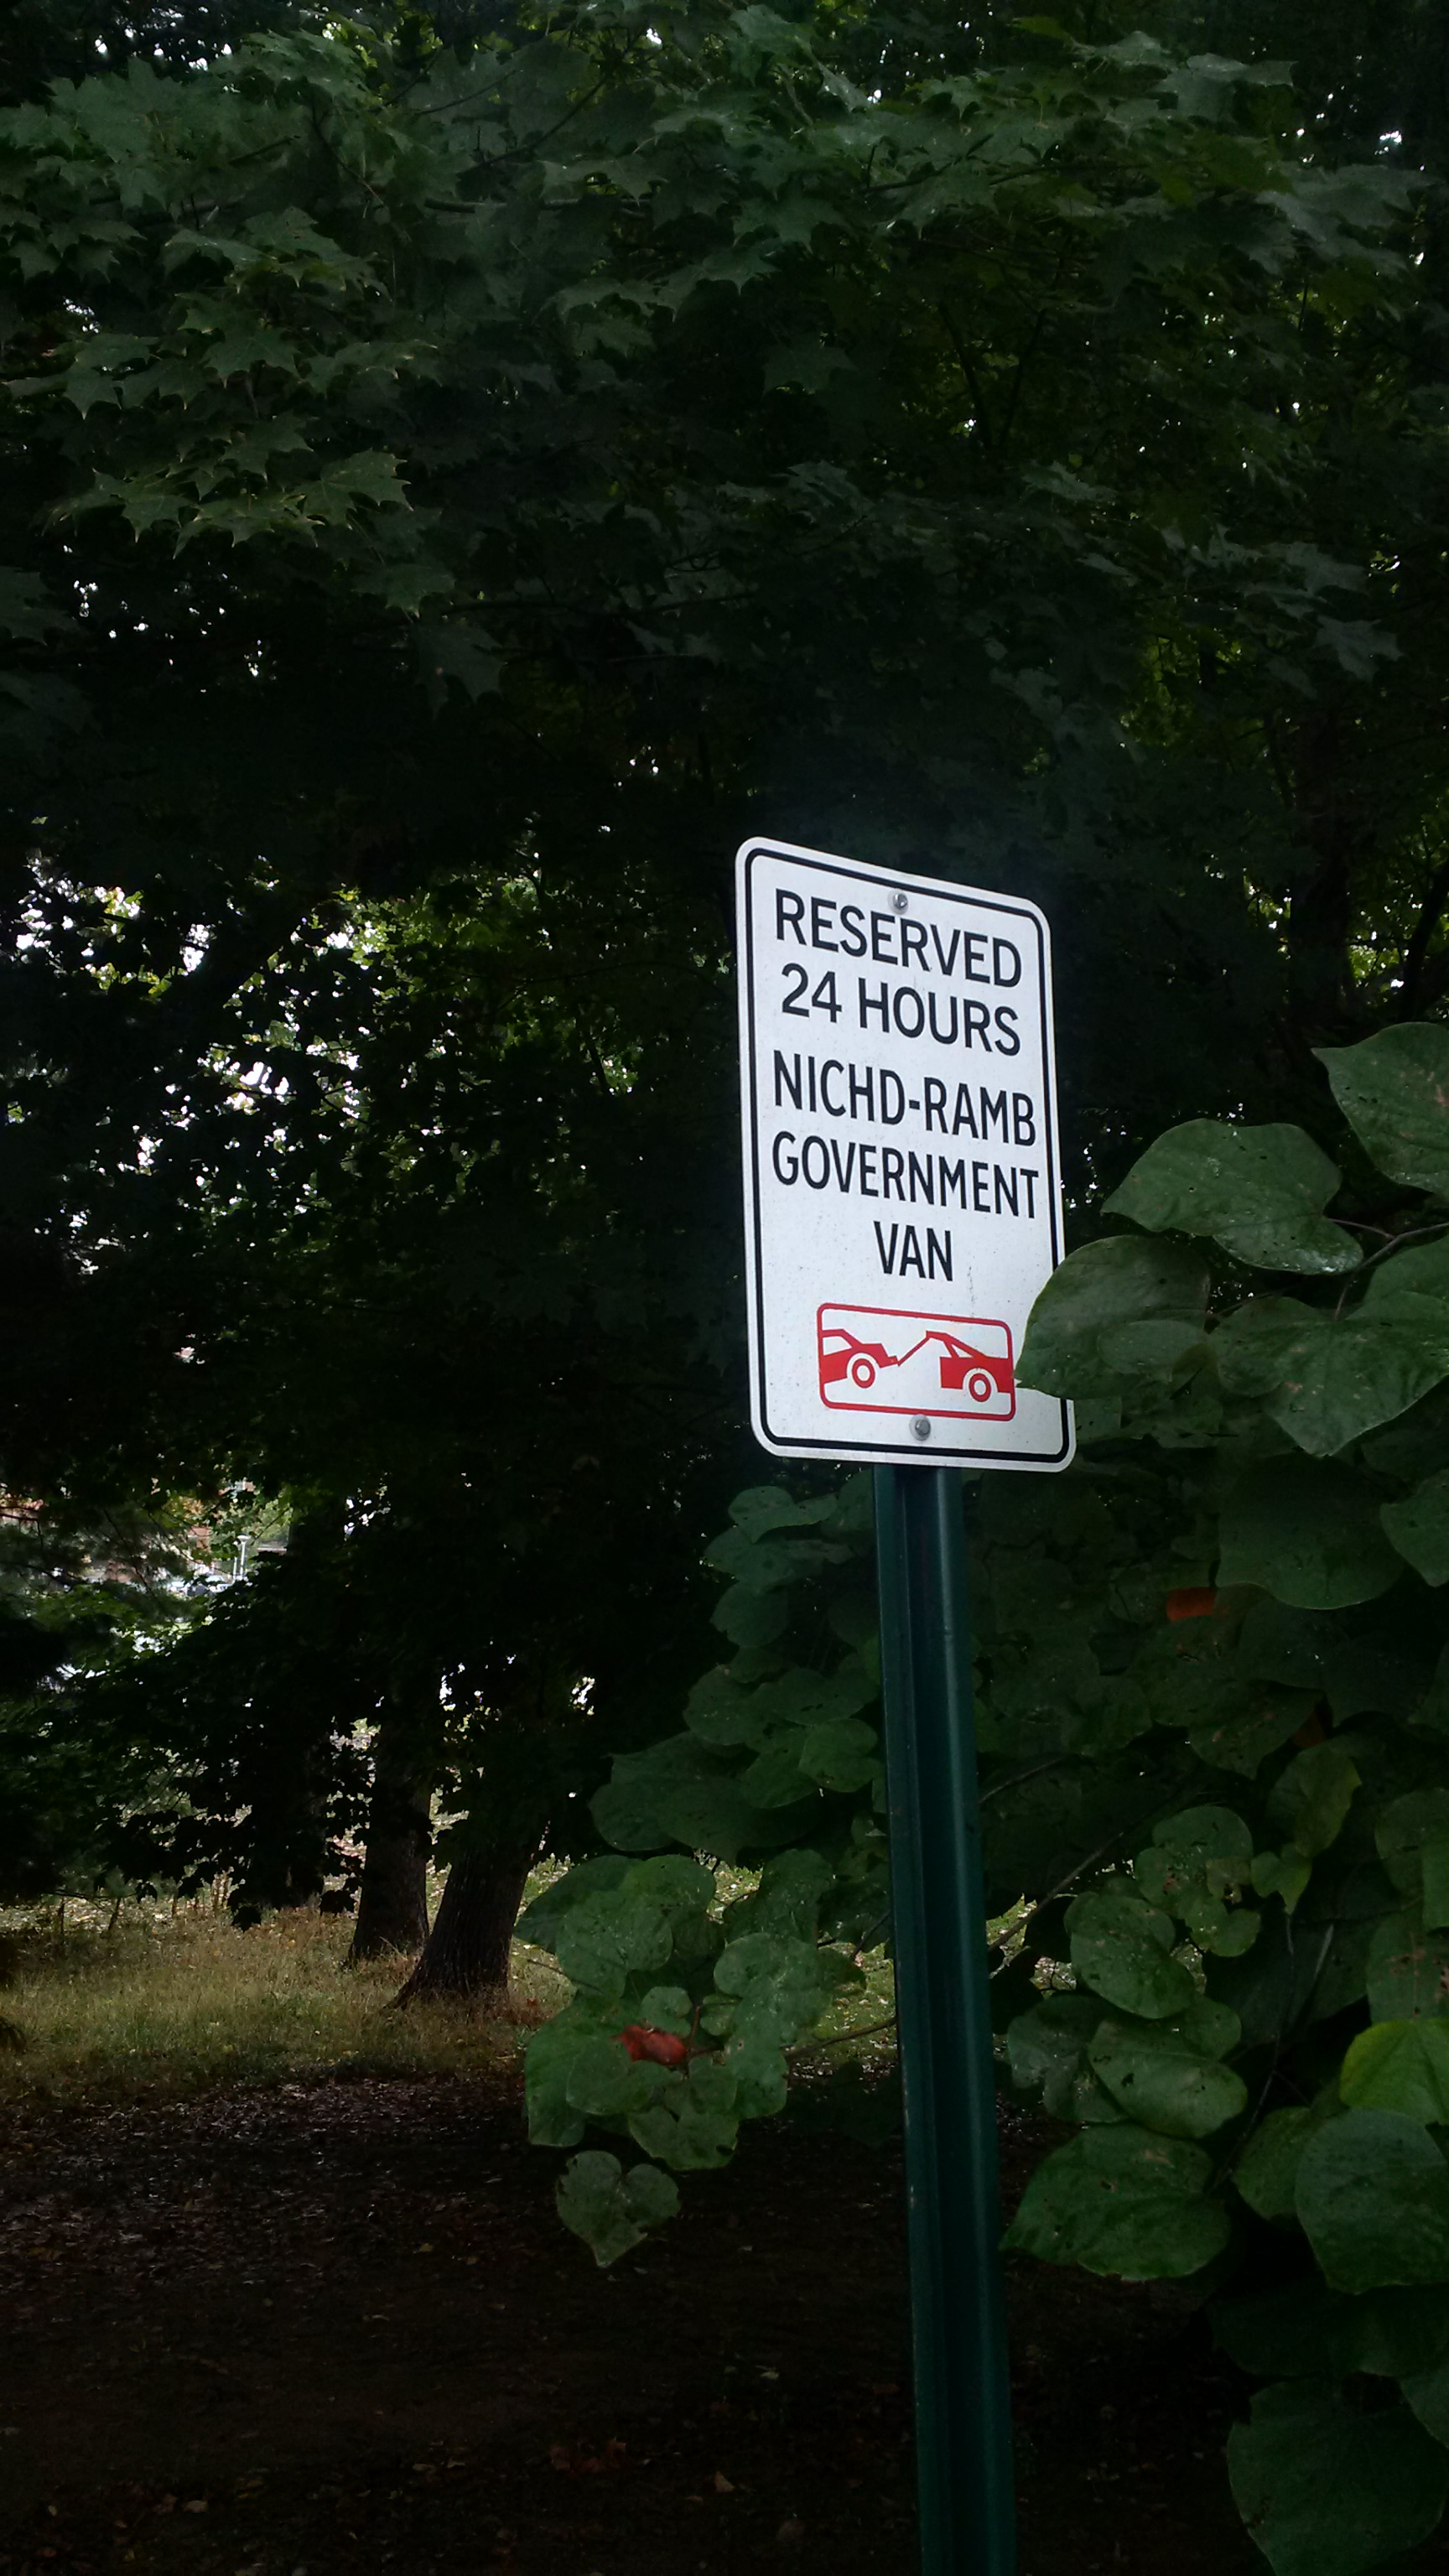 Image of Government Vehilce Parking Sign